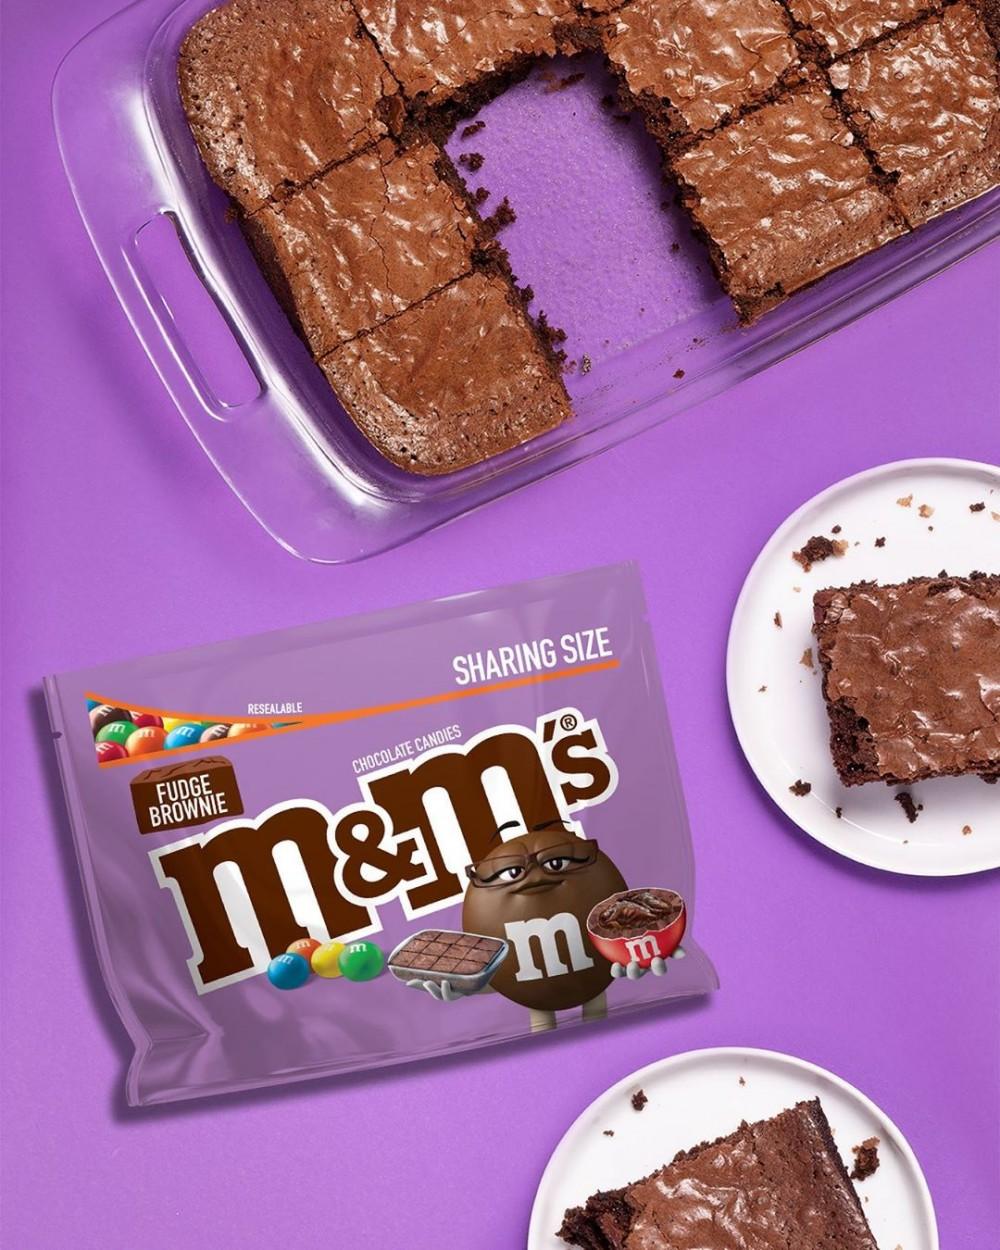 M&M'S 朱古力新口味Fudge Brownies布朗尼蛋糕4月推出